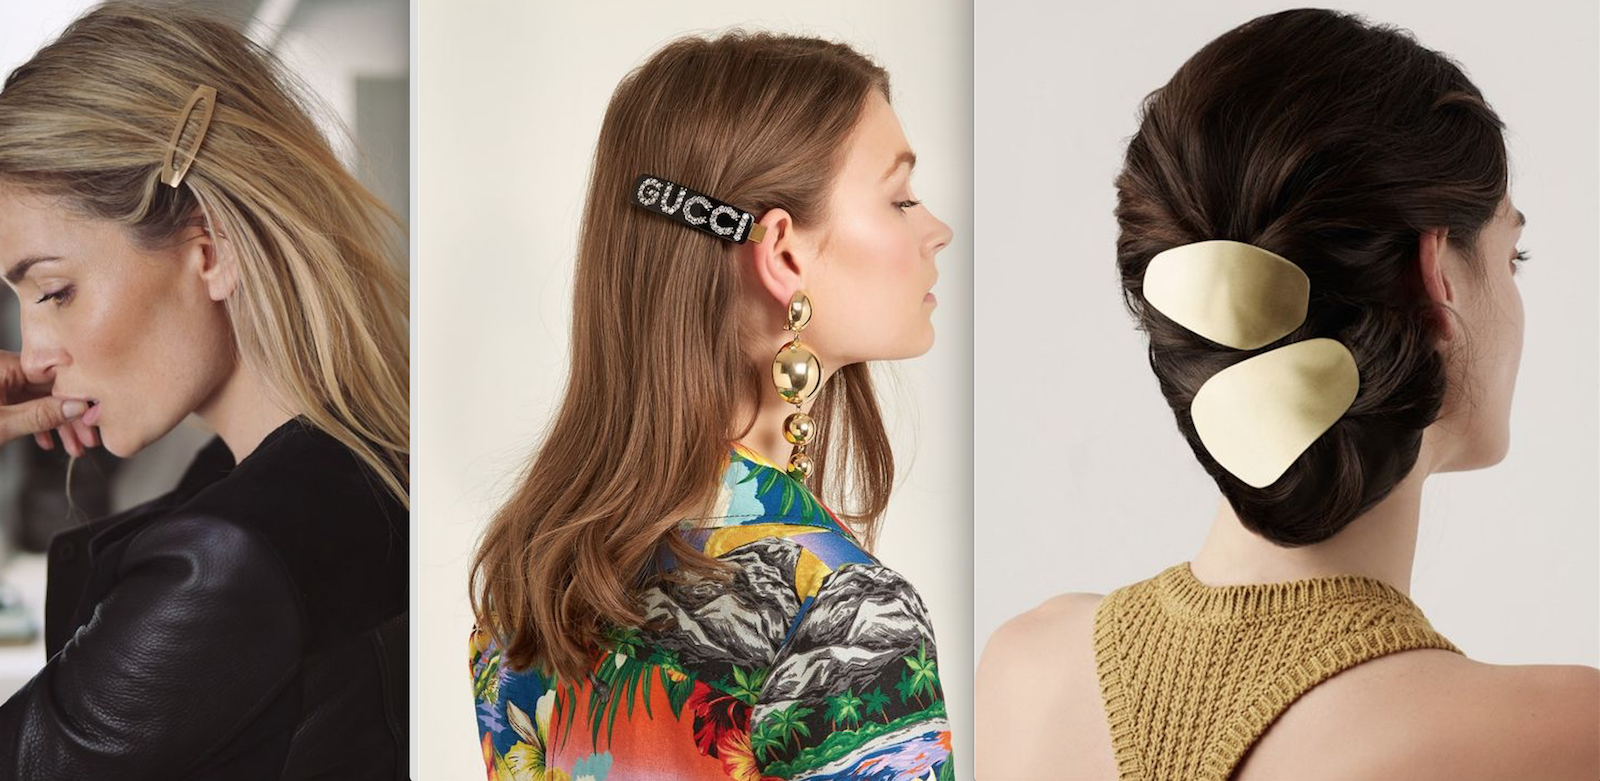 The hottest hair clips